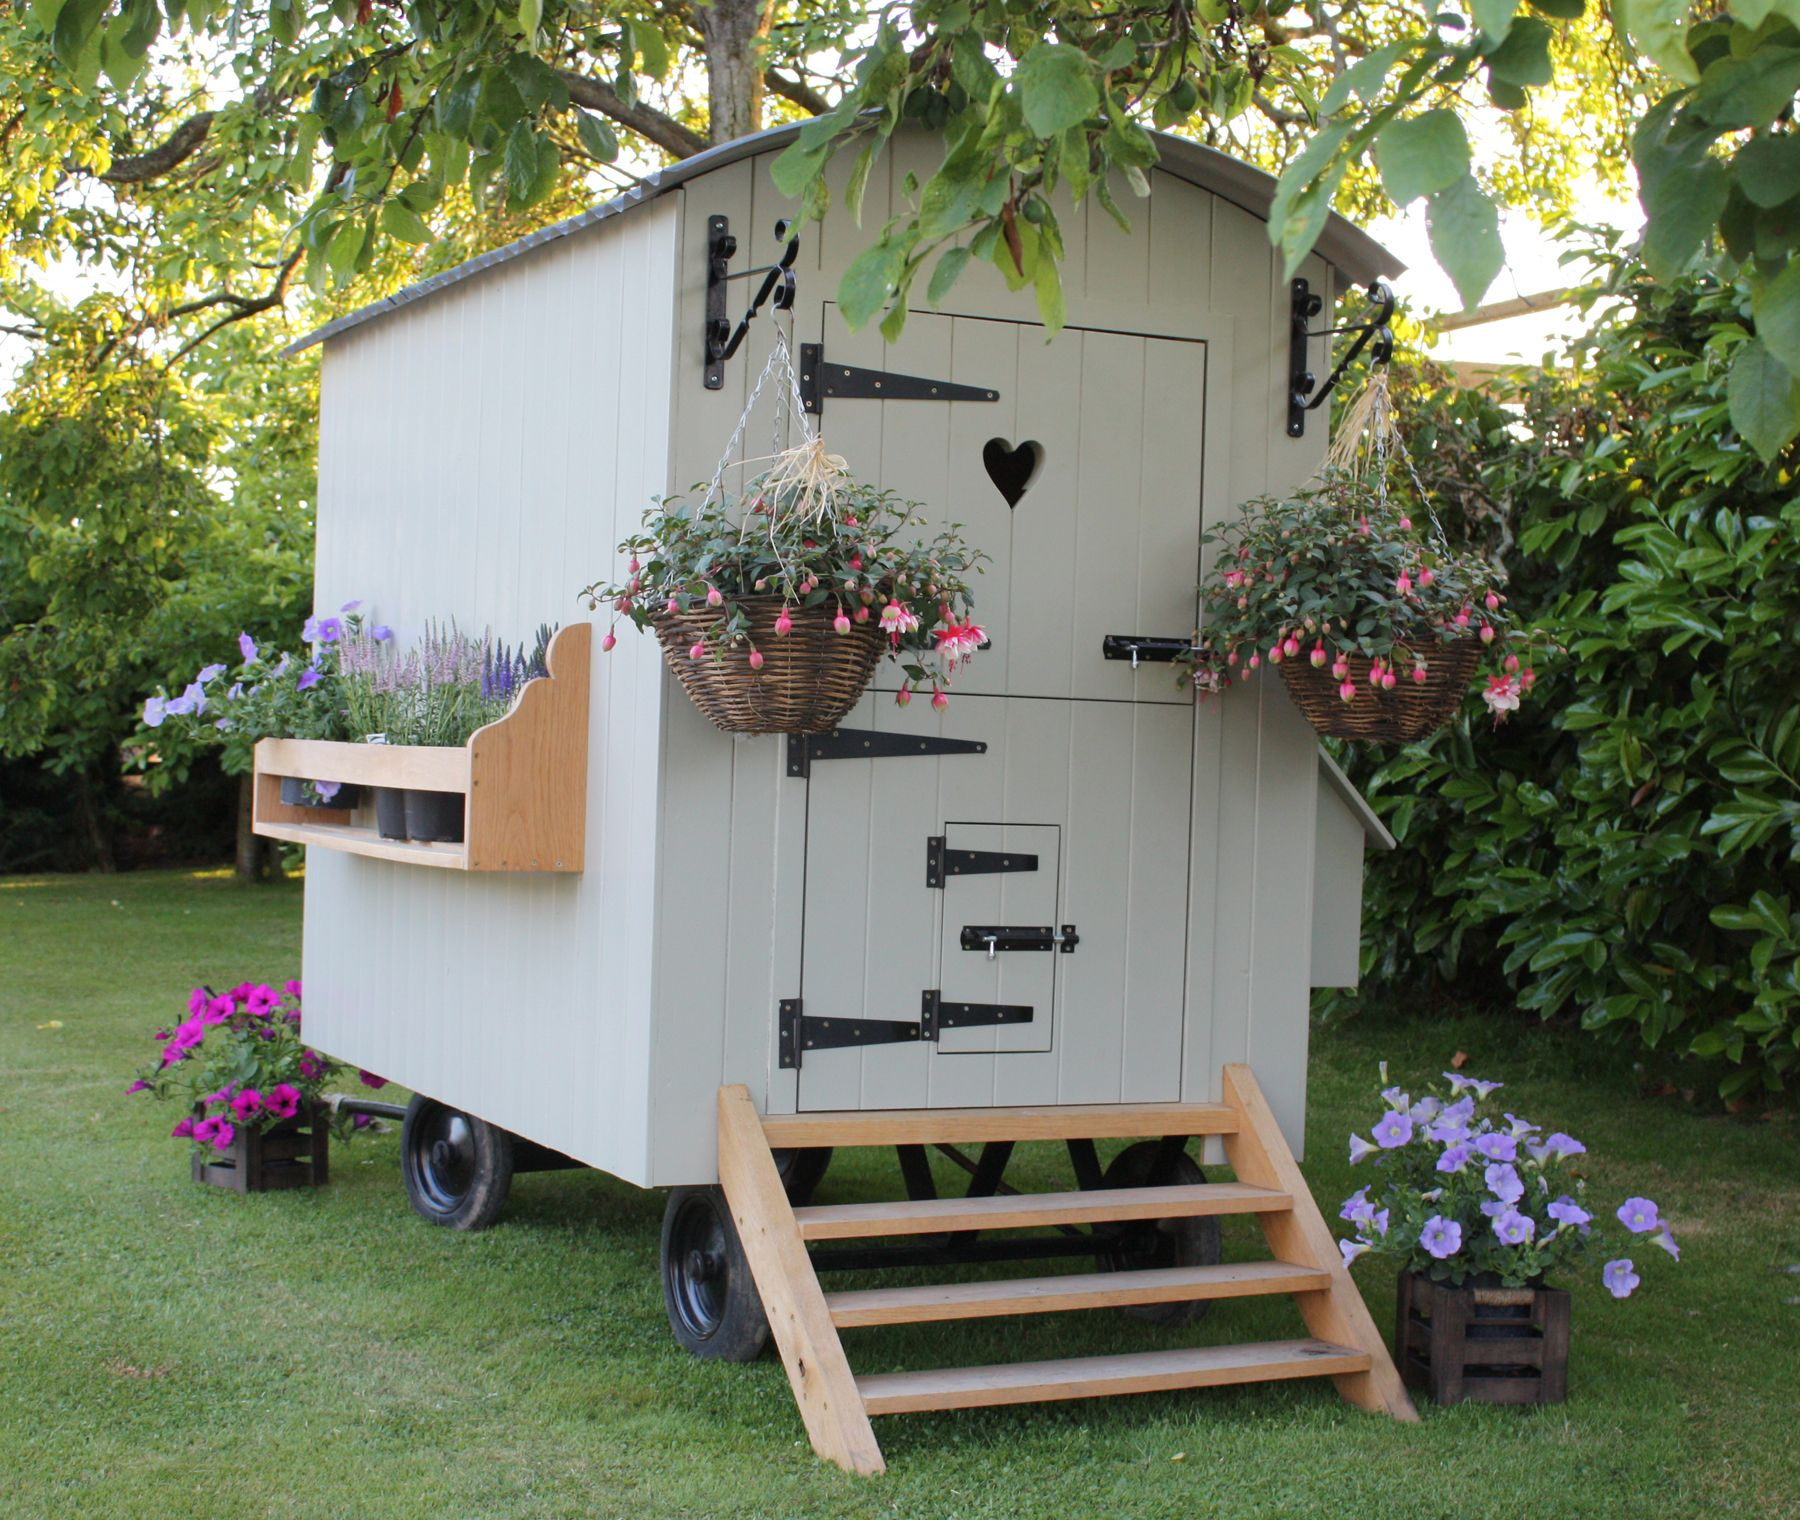 SABIN DESIGNS JOINERY SHEPHERDS HUTS WORCESTERHSIRE - Chicken co op with flowers